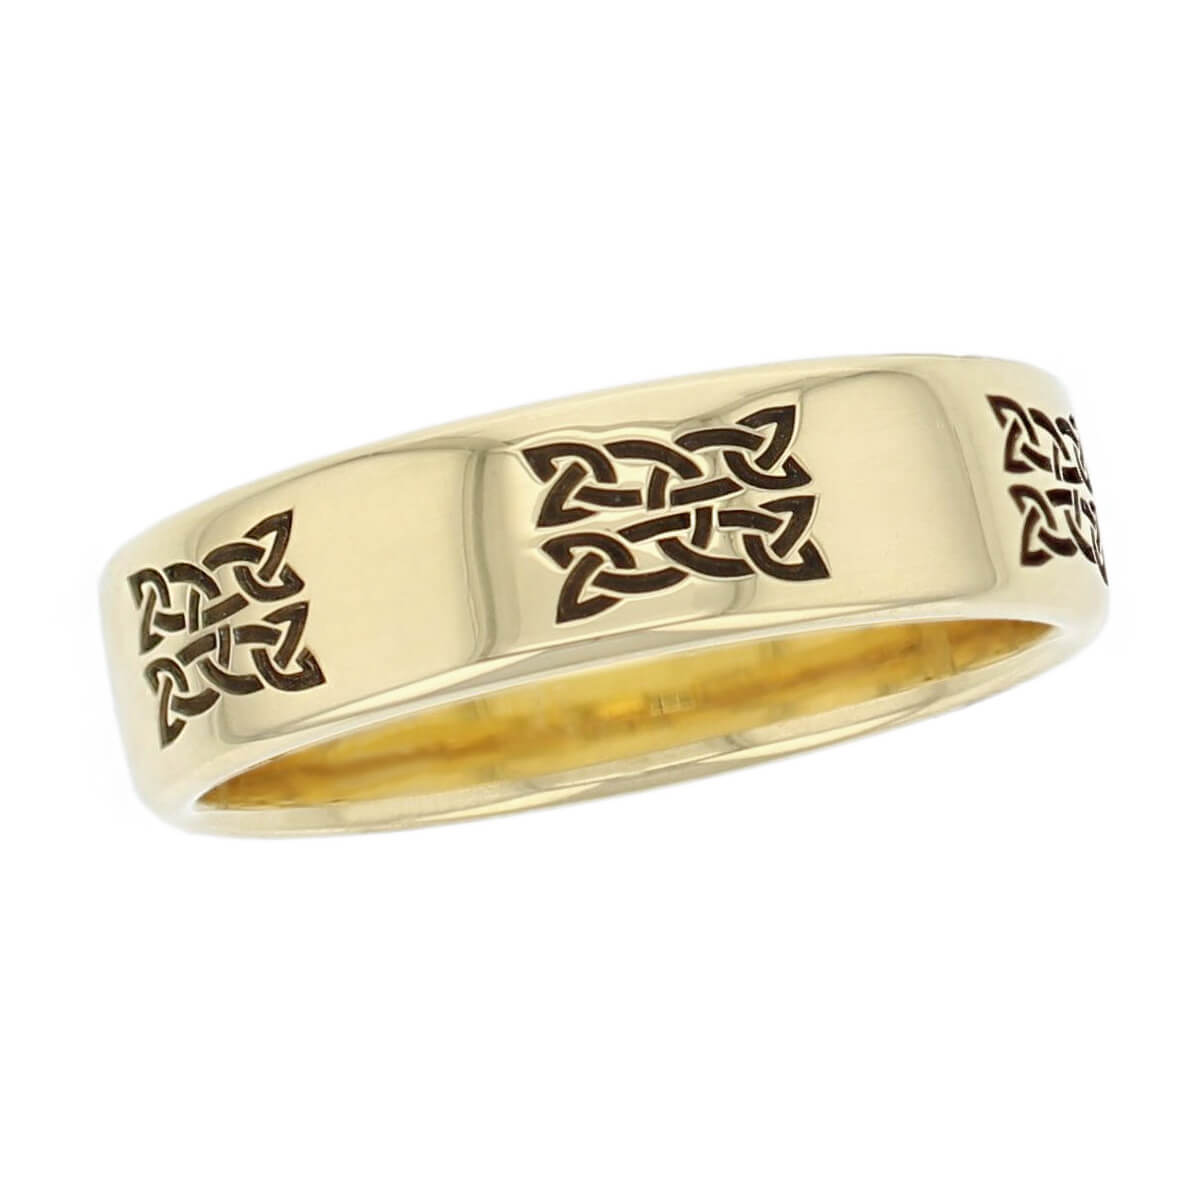 celtic knot wedding ring pattern, men's, gents, woven pattern, Irish, made by Faller, 18ct yellow gold